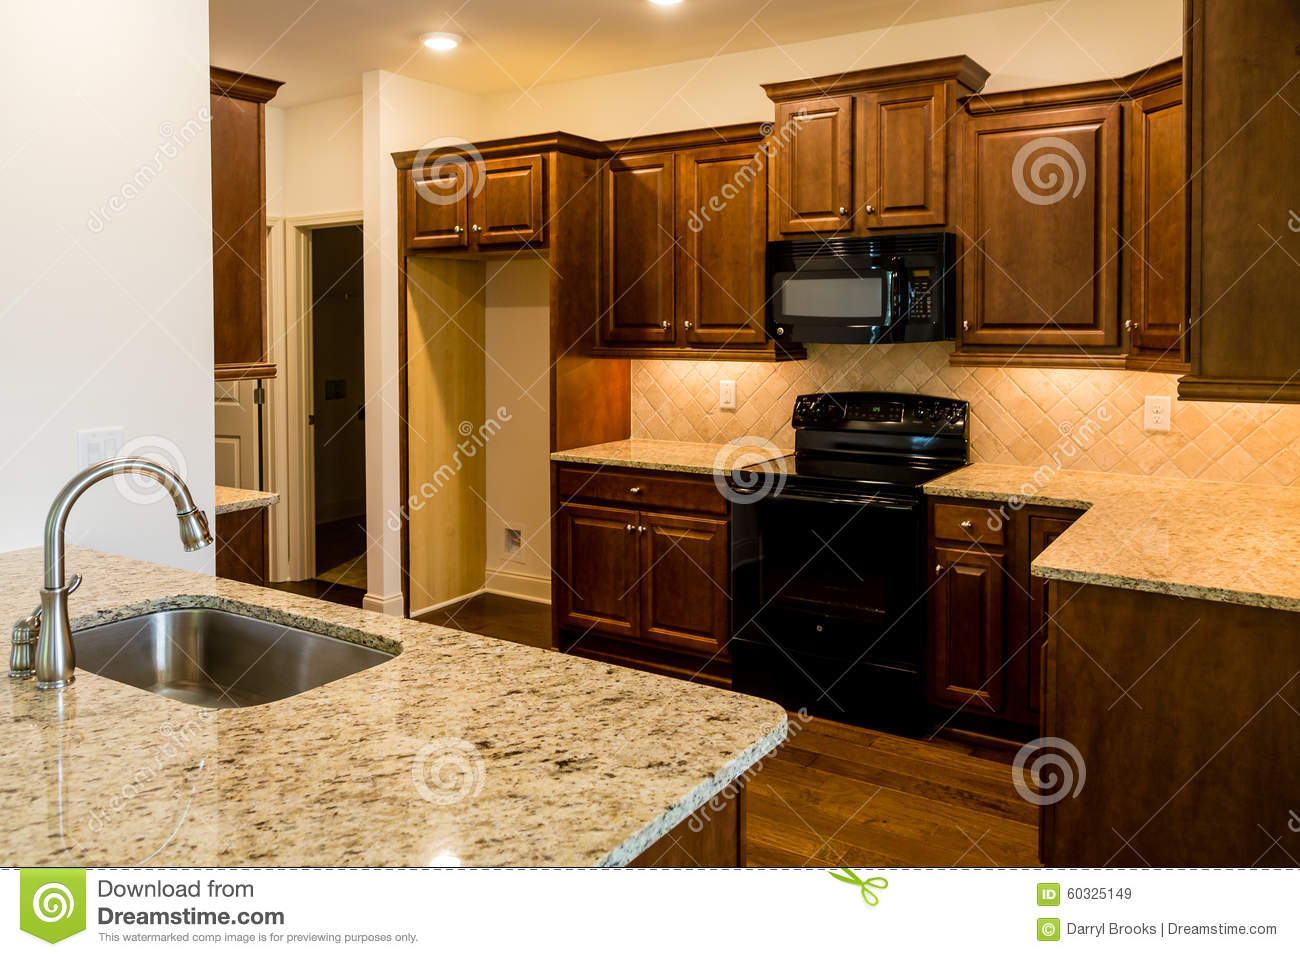 Stainless steel sink and black appliances stock image for Kitchens with black appliances